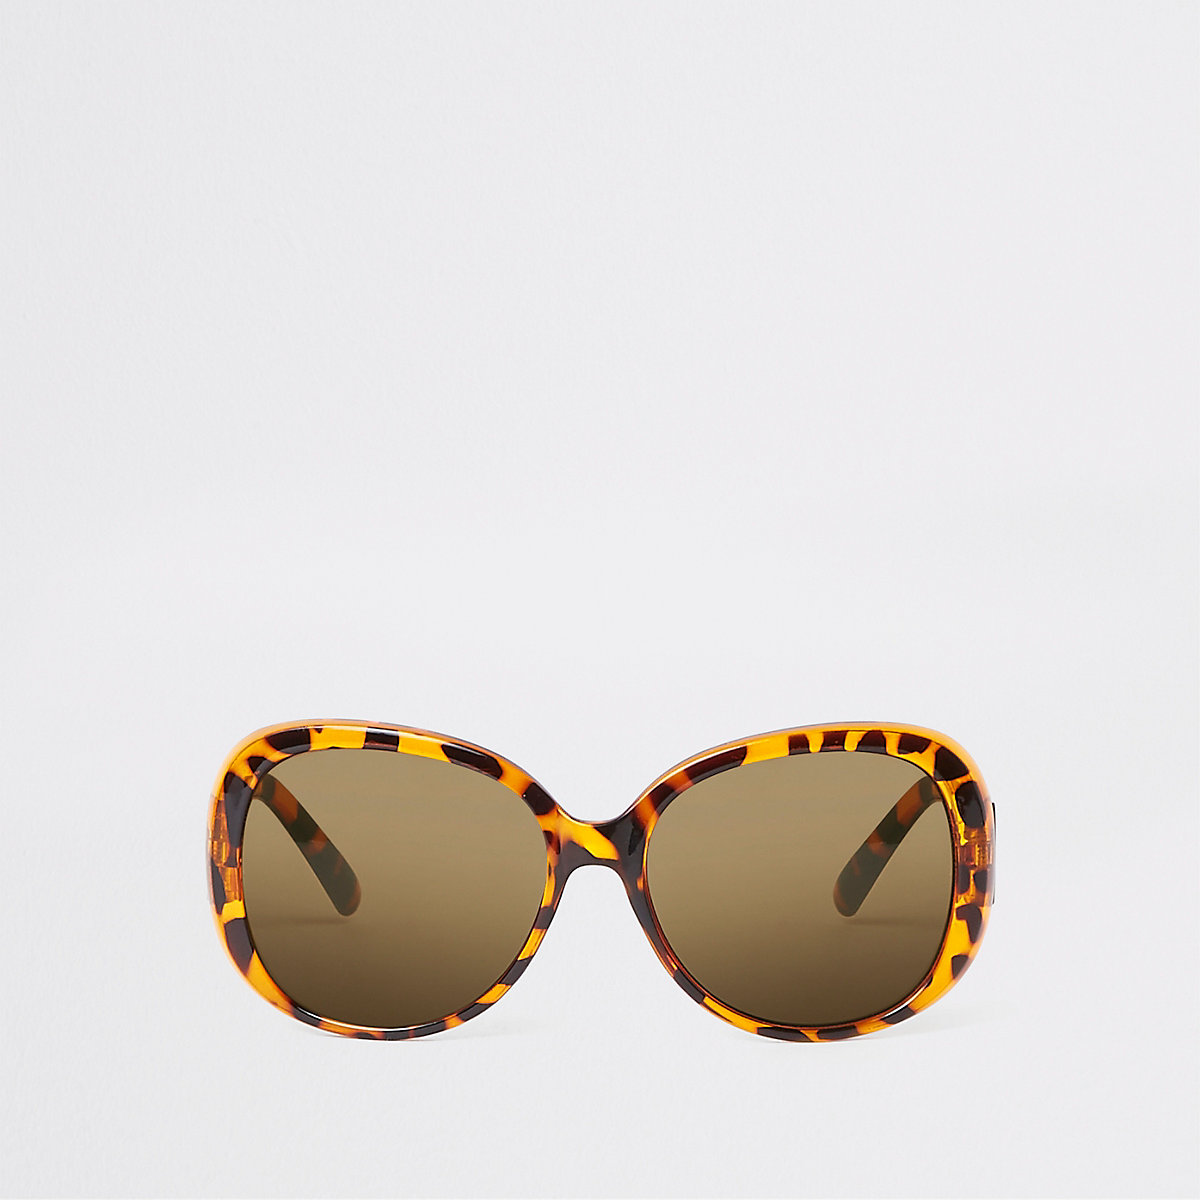 Brown tortoise shell glam sunglasses